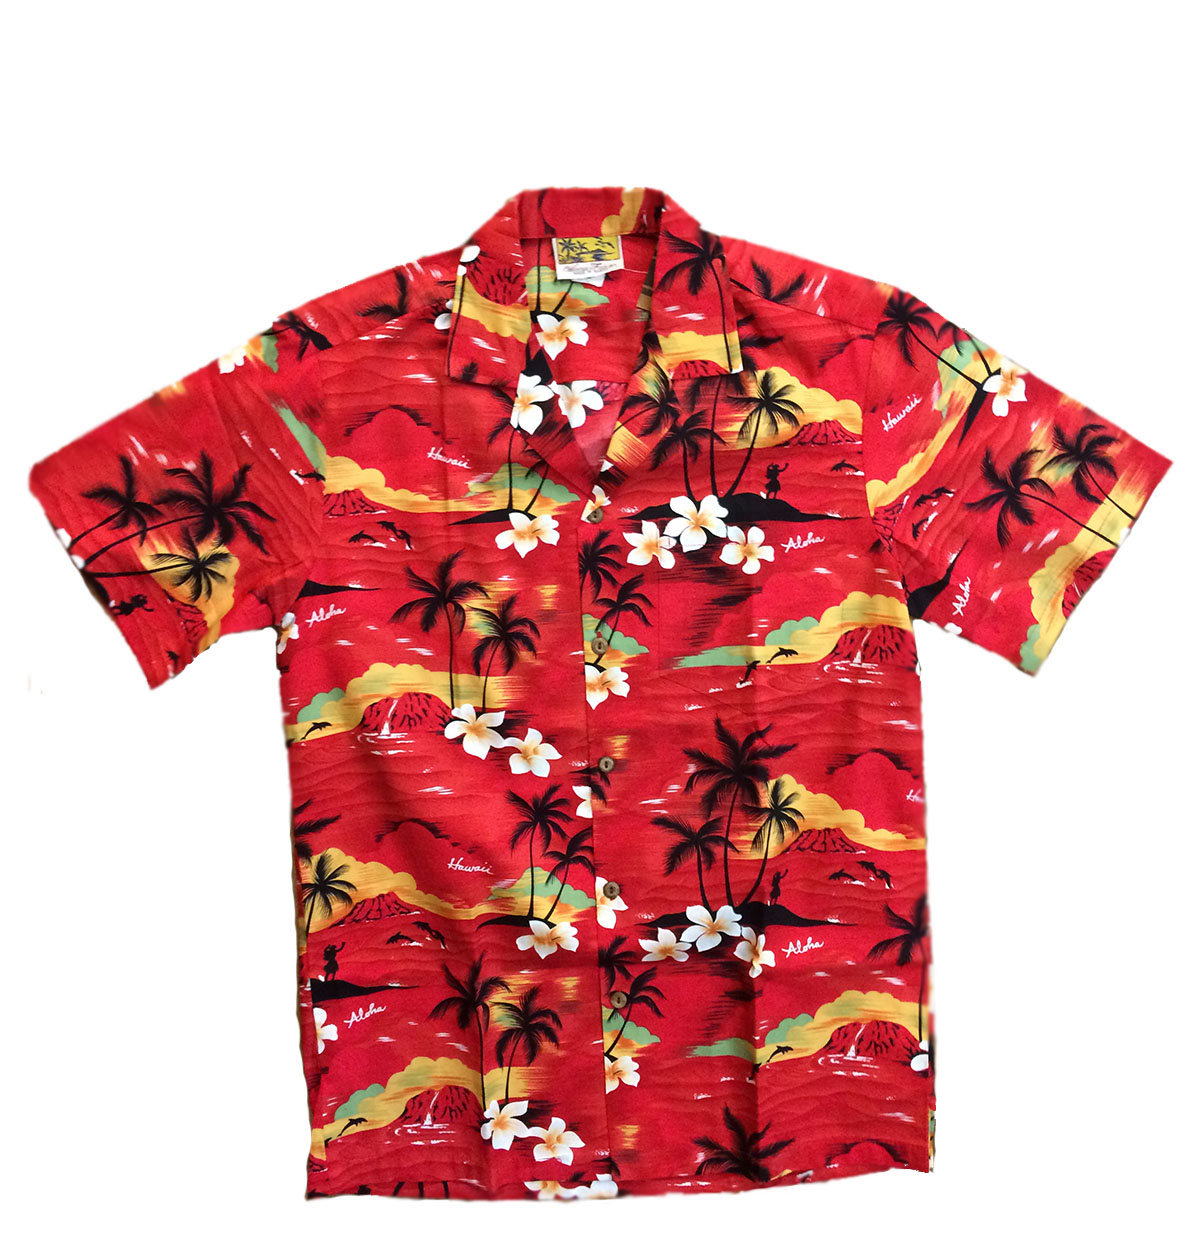 26e2ed1a3 CAMISA HAWAIANA WINNIE FASHION A HUNDRED SUNSETS